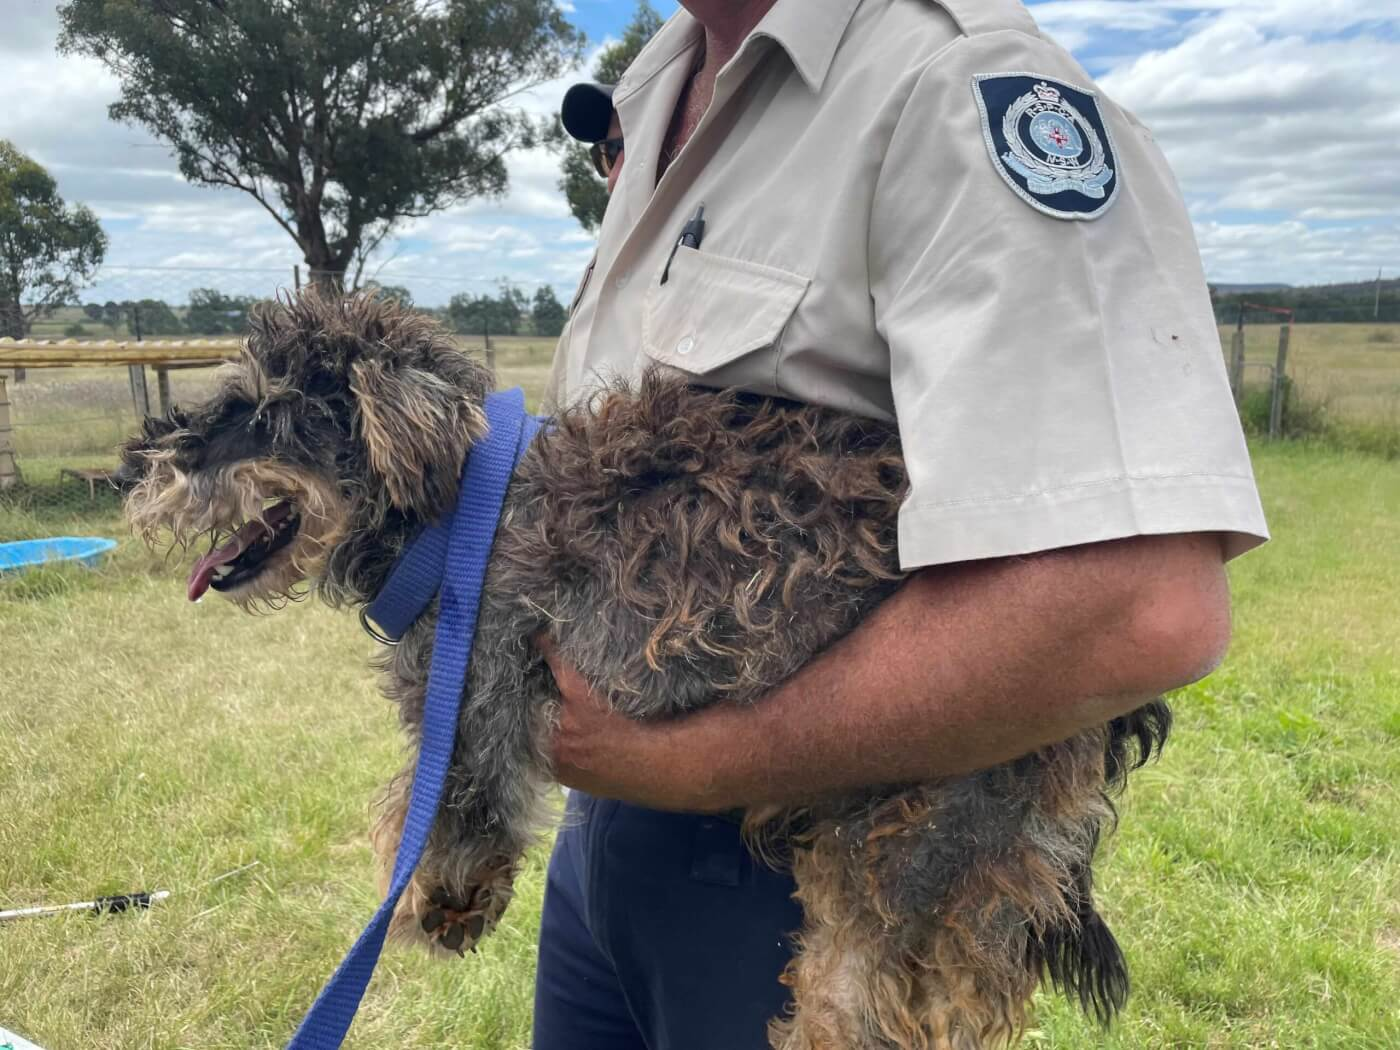 A dog seized by the RSPCA/